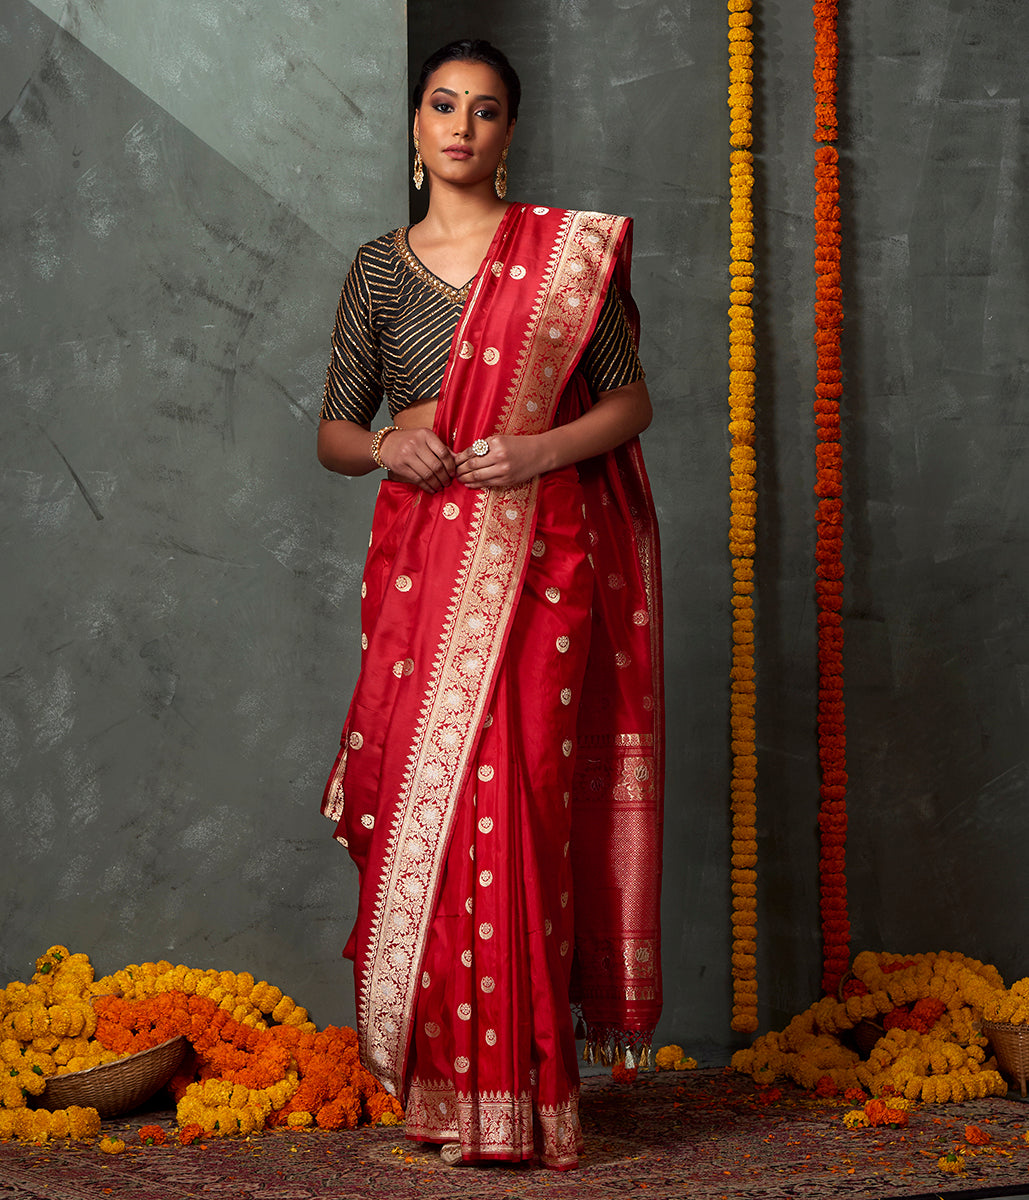 Handwoven Red Chand Boota Saree with Floral Border and Sona Rupa Zari